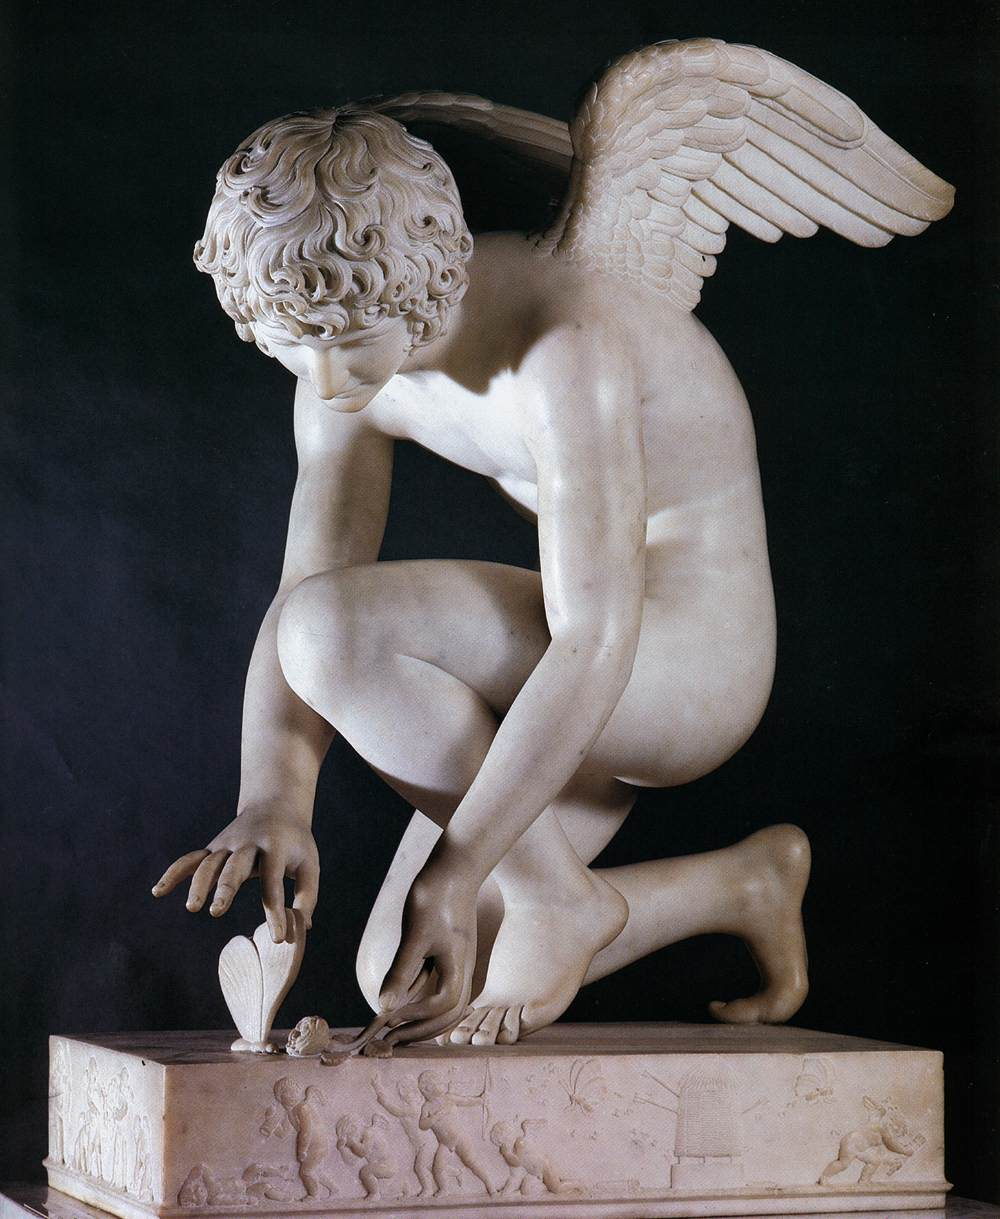 Antoine-Denis Chaudet, Cupid, 1802, Louvre Museum (Photo in pubic domain)